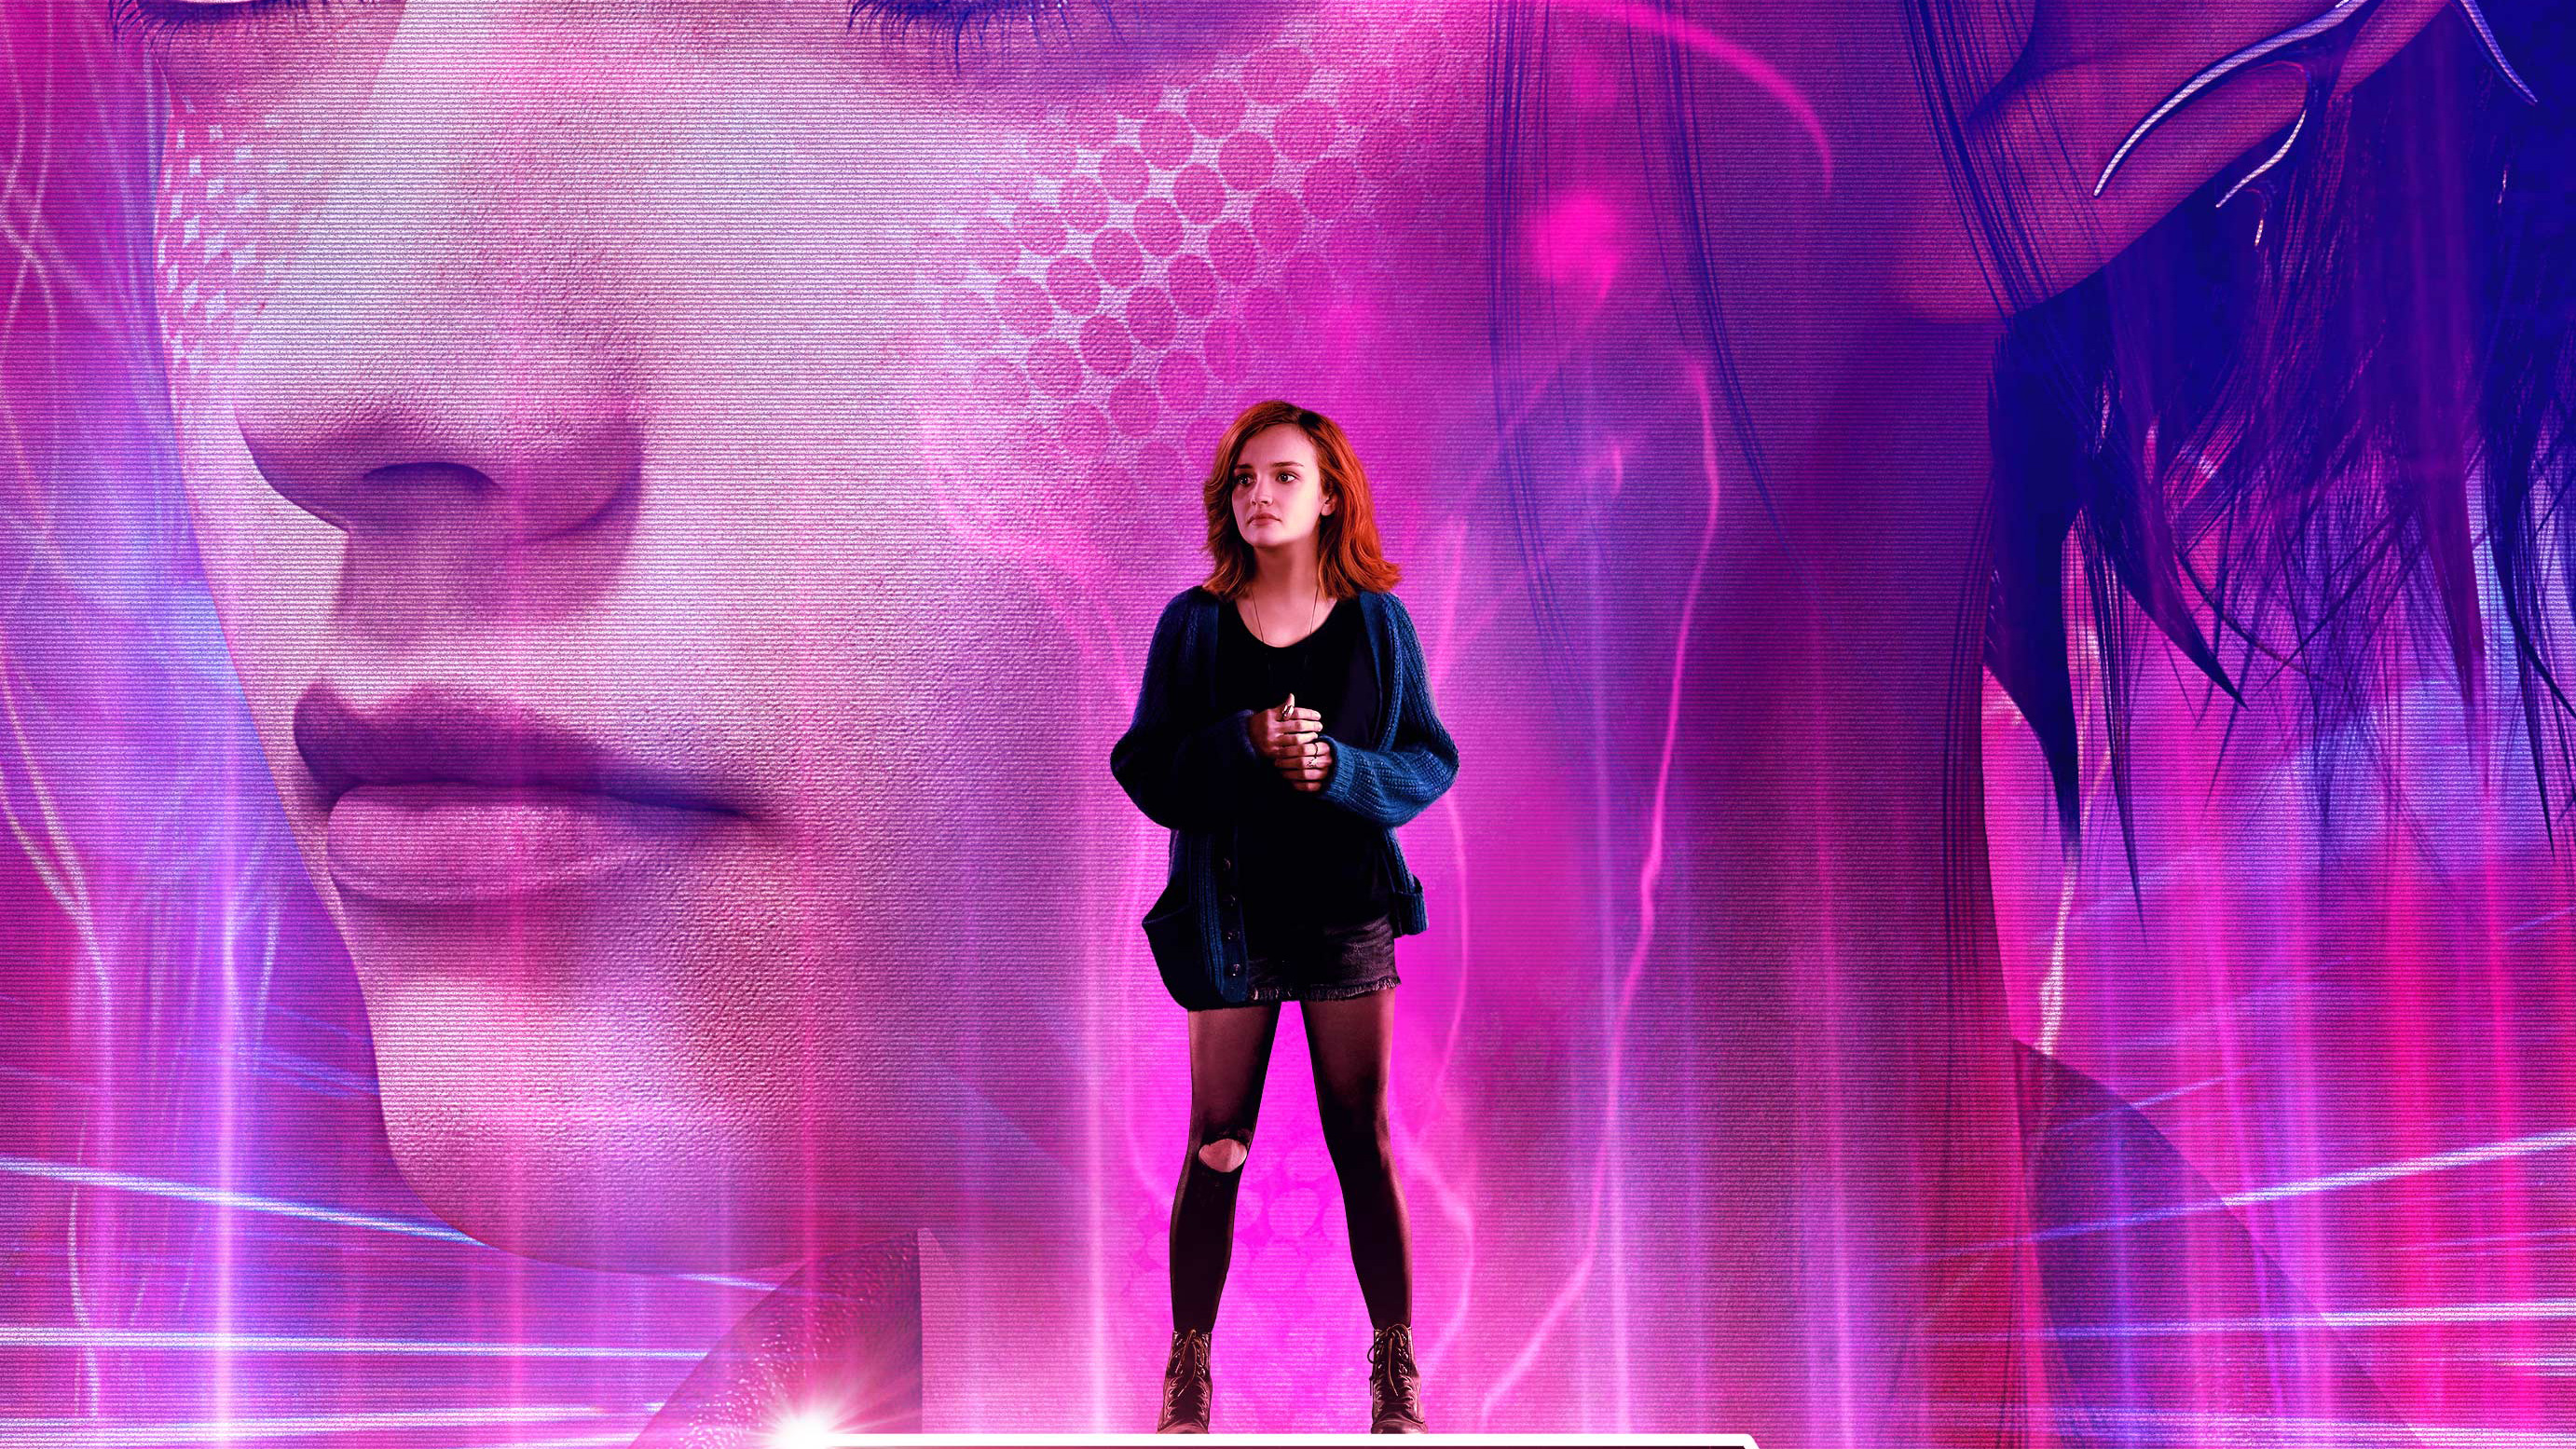 Olivia Cooke in Ready Player One9754513687 - Olivia Cooke in Ready Player One - Ready, Player, One, Olivia, Lawrence, Cooke